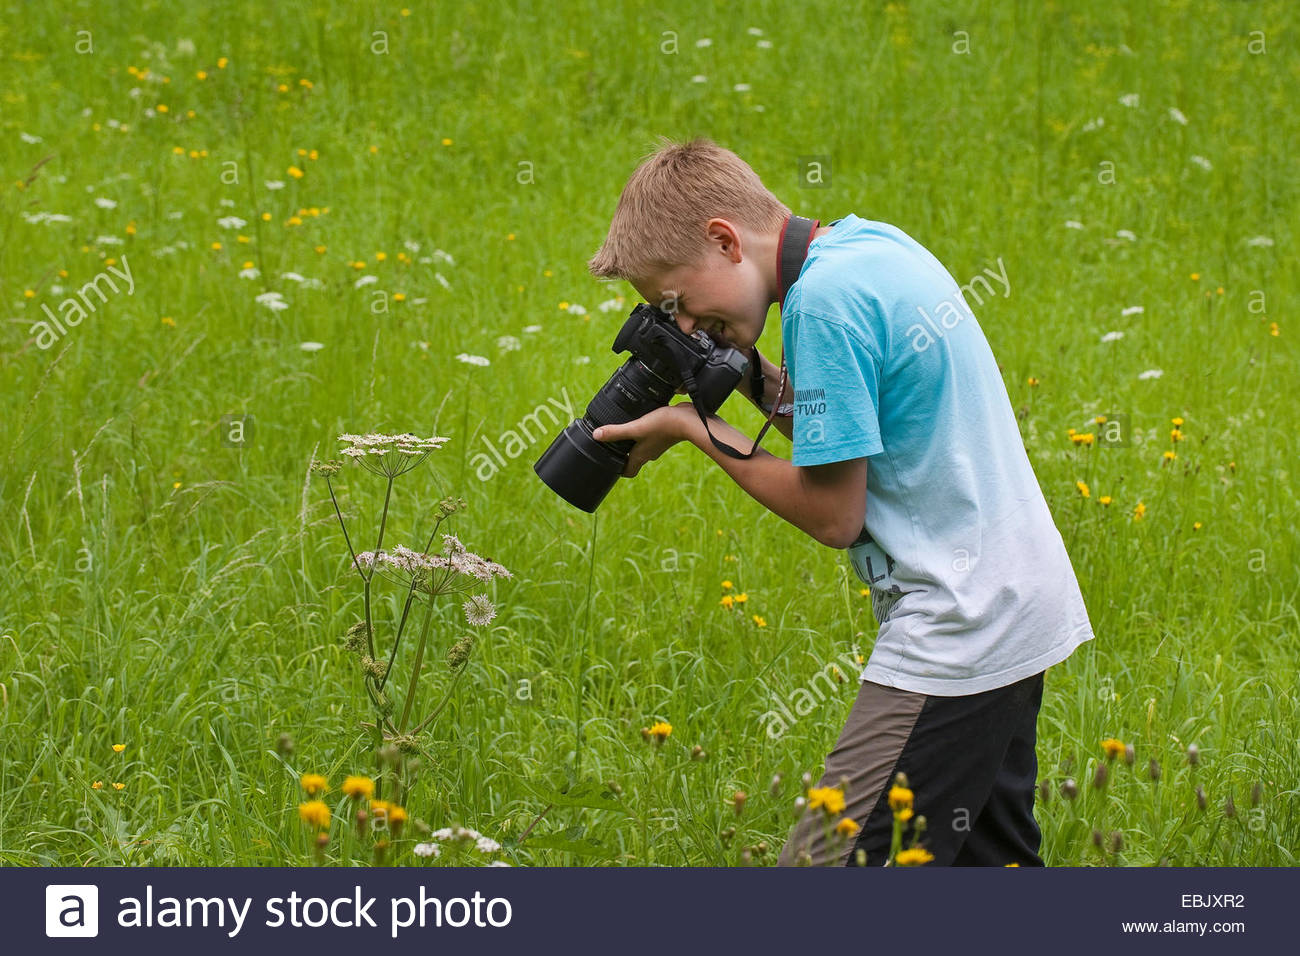 boy-photographs-in-nature-germany-EBJXR2